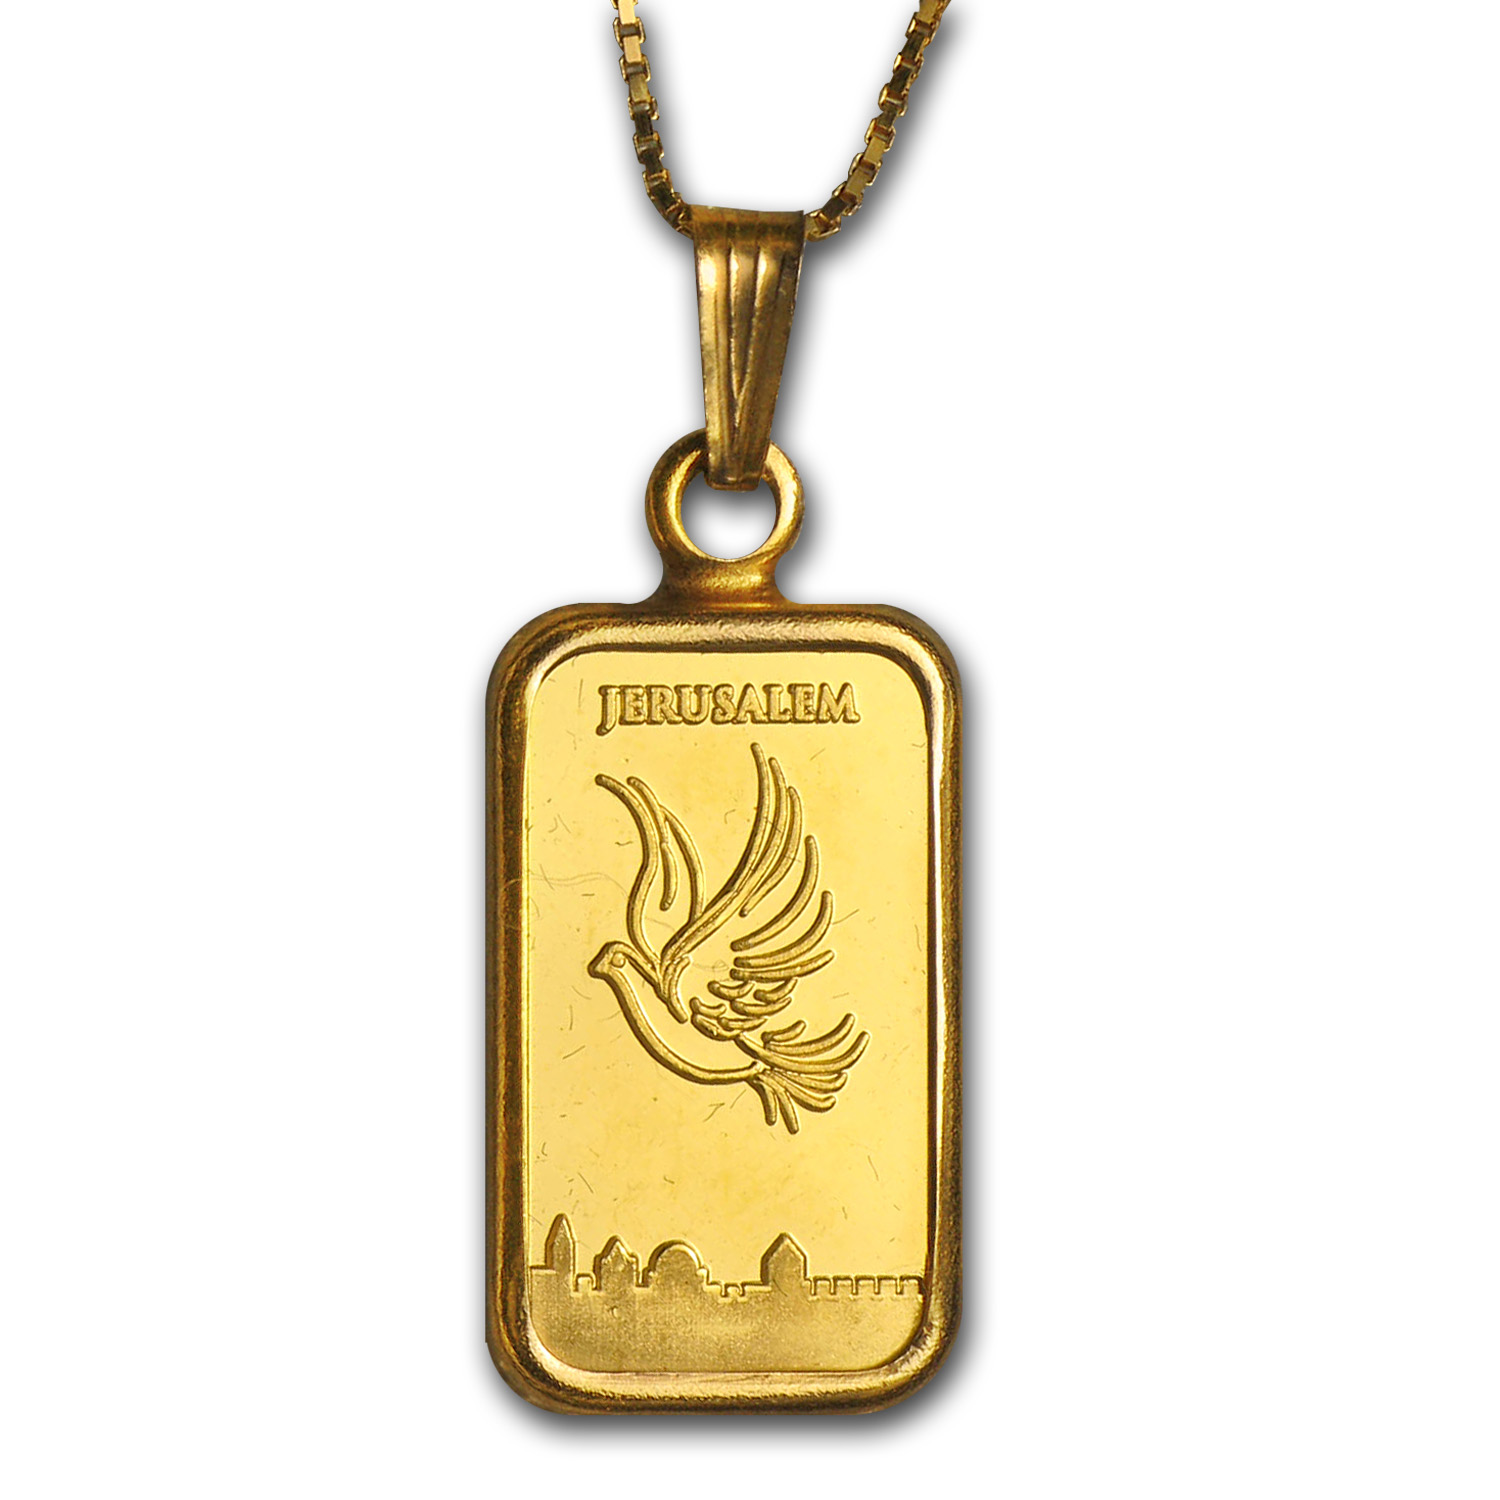 1 Gram Gold Bar Dove of Peace Necklace (AGW .05417 oz)